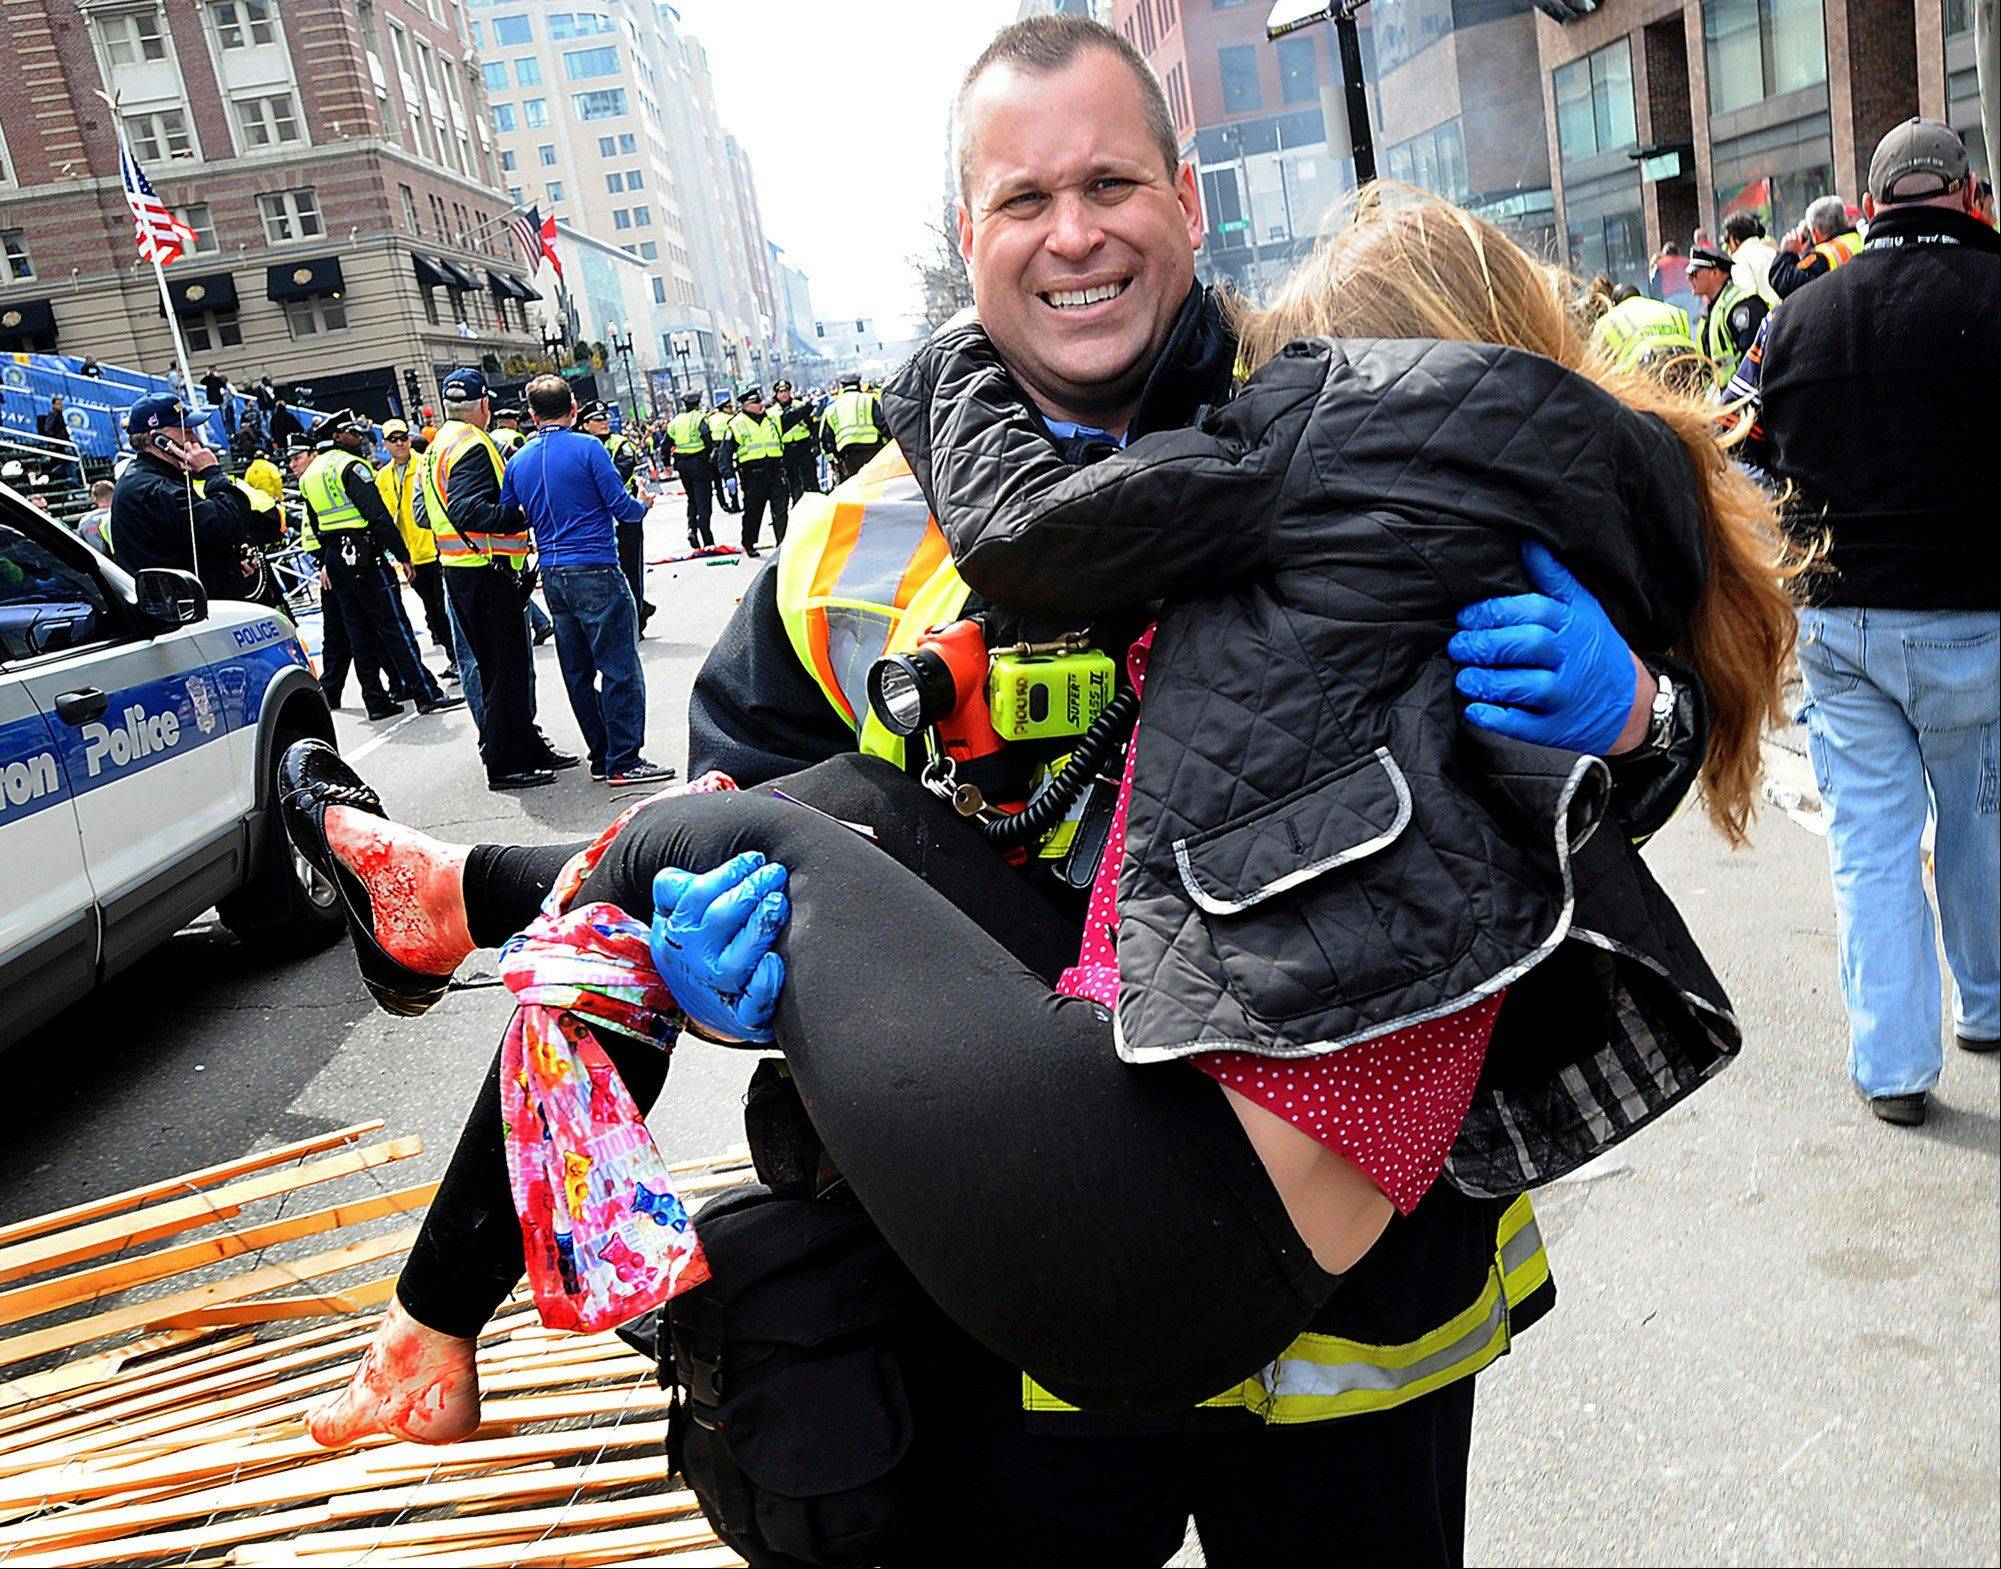 Boston Firefighter James Plourde carries an injured girl away from the scene after a bombing near the finish line of the Boston Marathon in Boston.